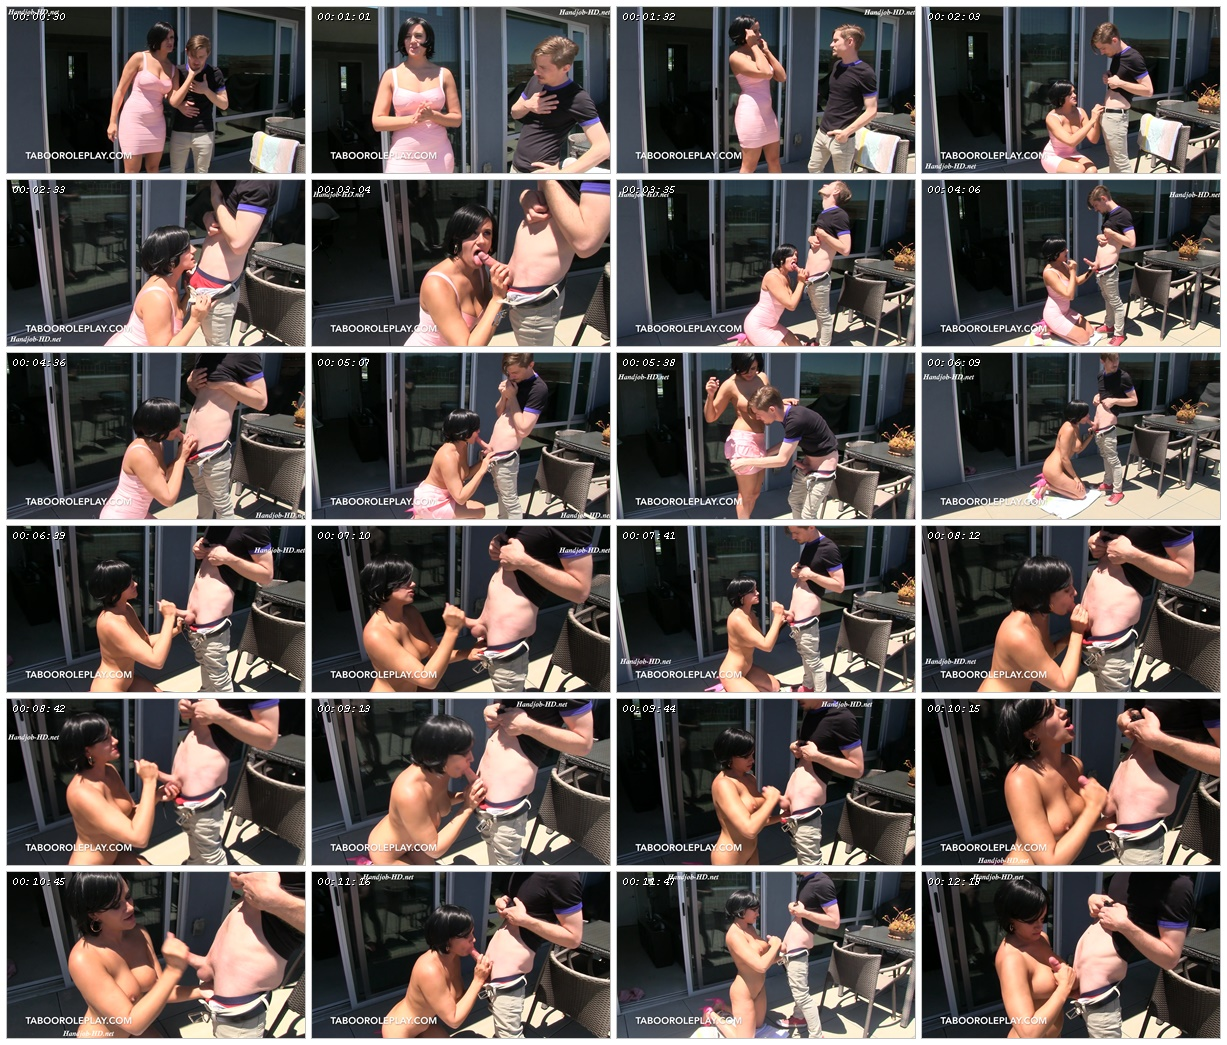 Penny Blows Her Step-Son on the Balcony – Miss Penny Barber_scrlist